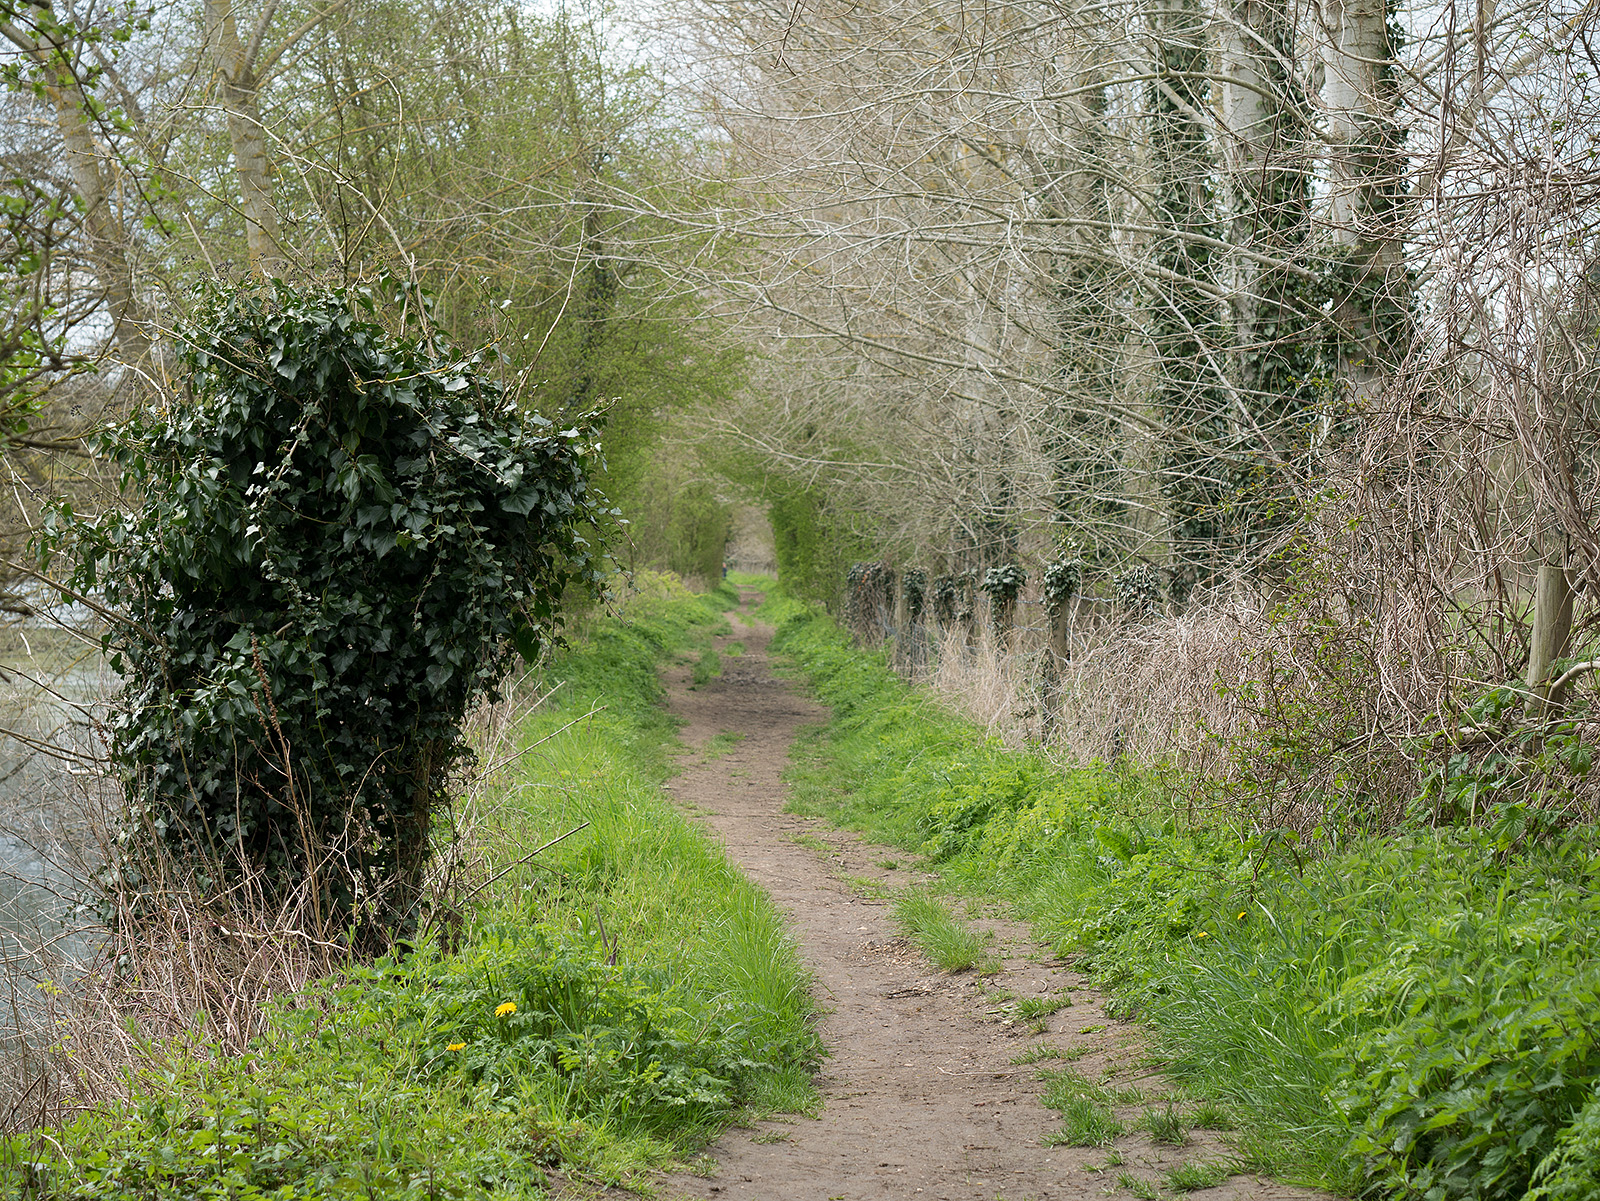 Heading towards Shillingford bridge - enclosed pathway.